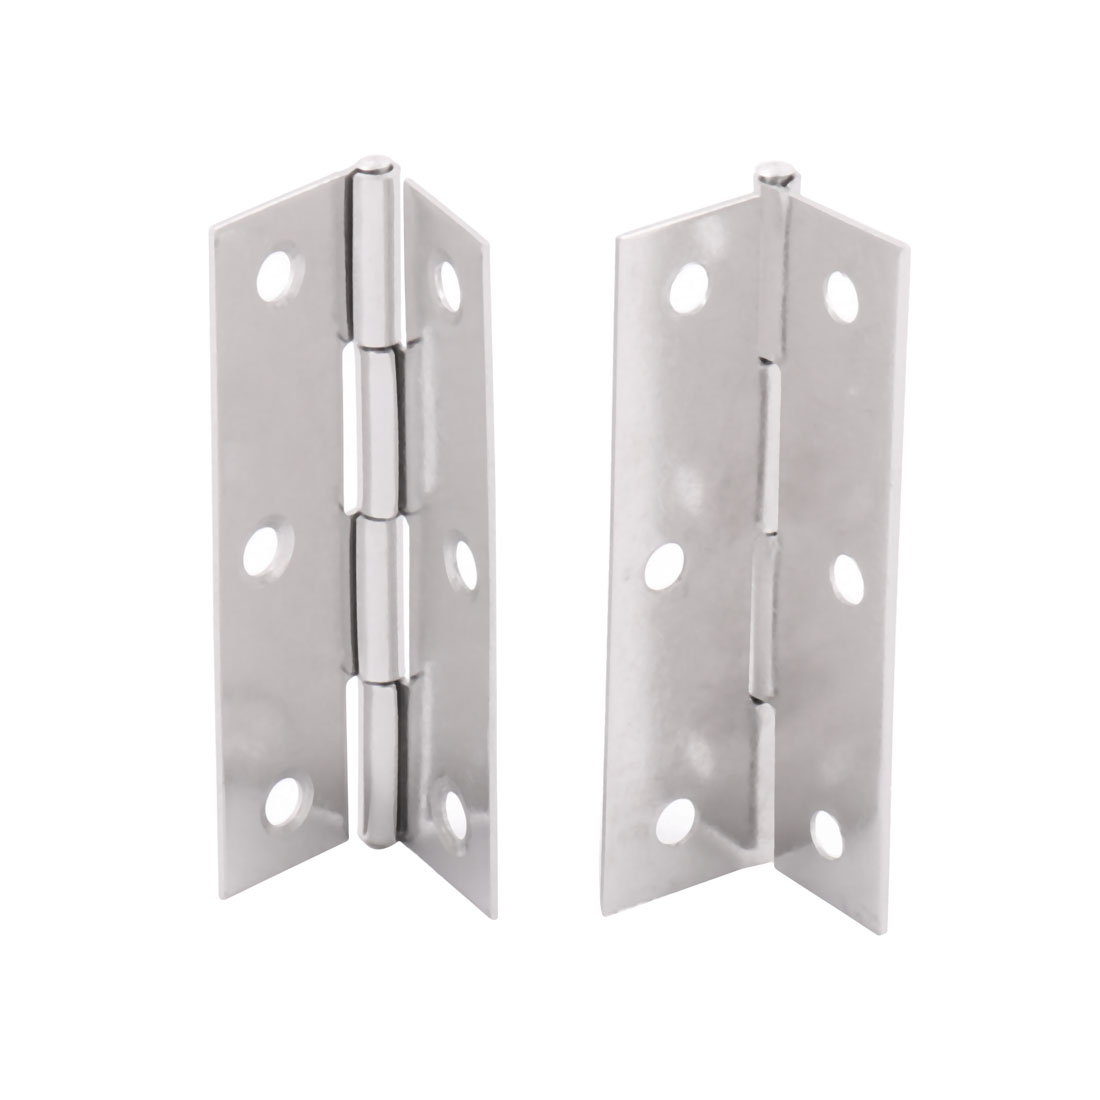 uxcell Cabinet Gate Closet Door 3-inch Long Stainless Steel Hinge 4pcs